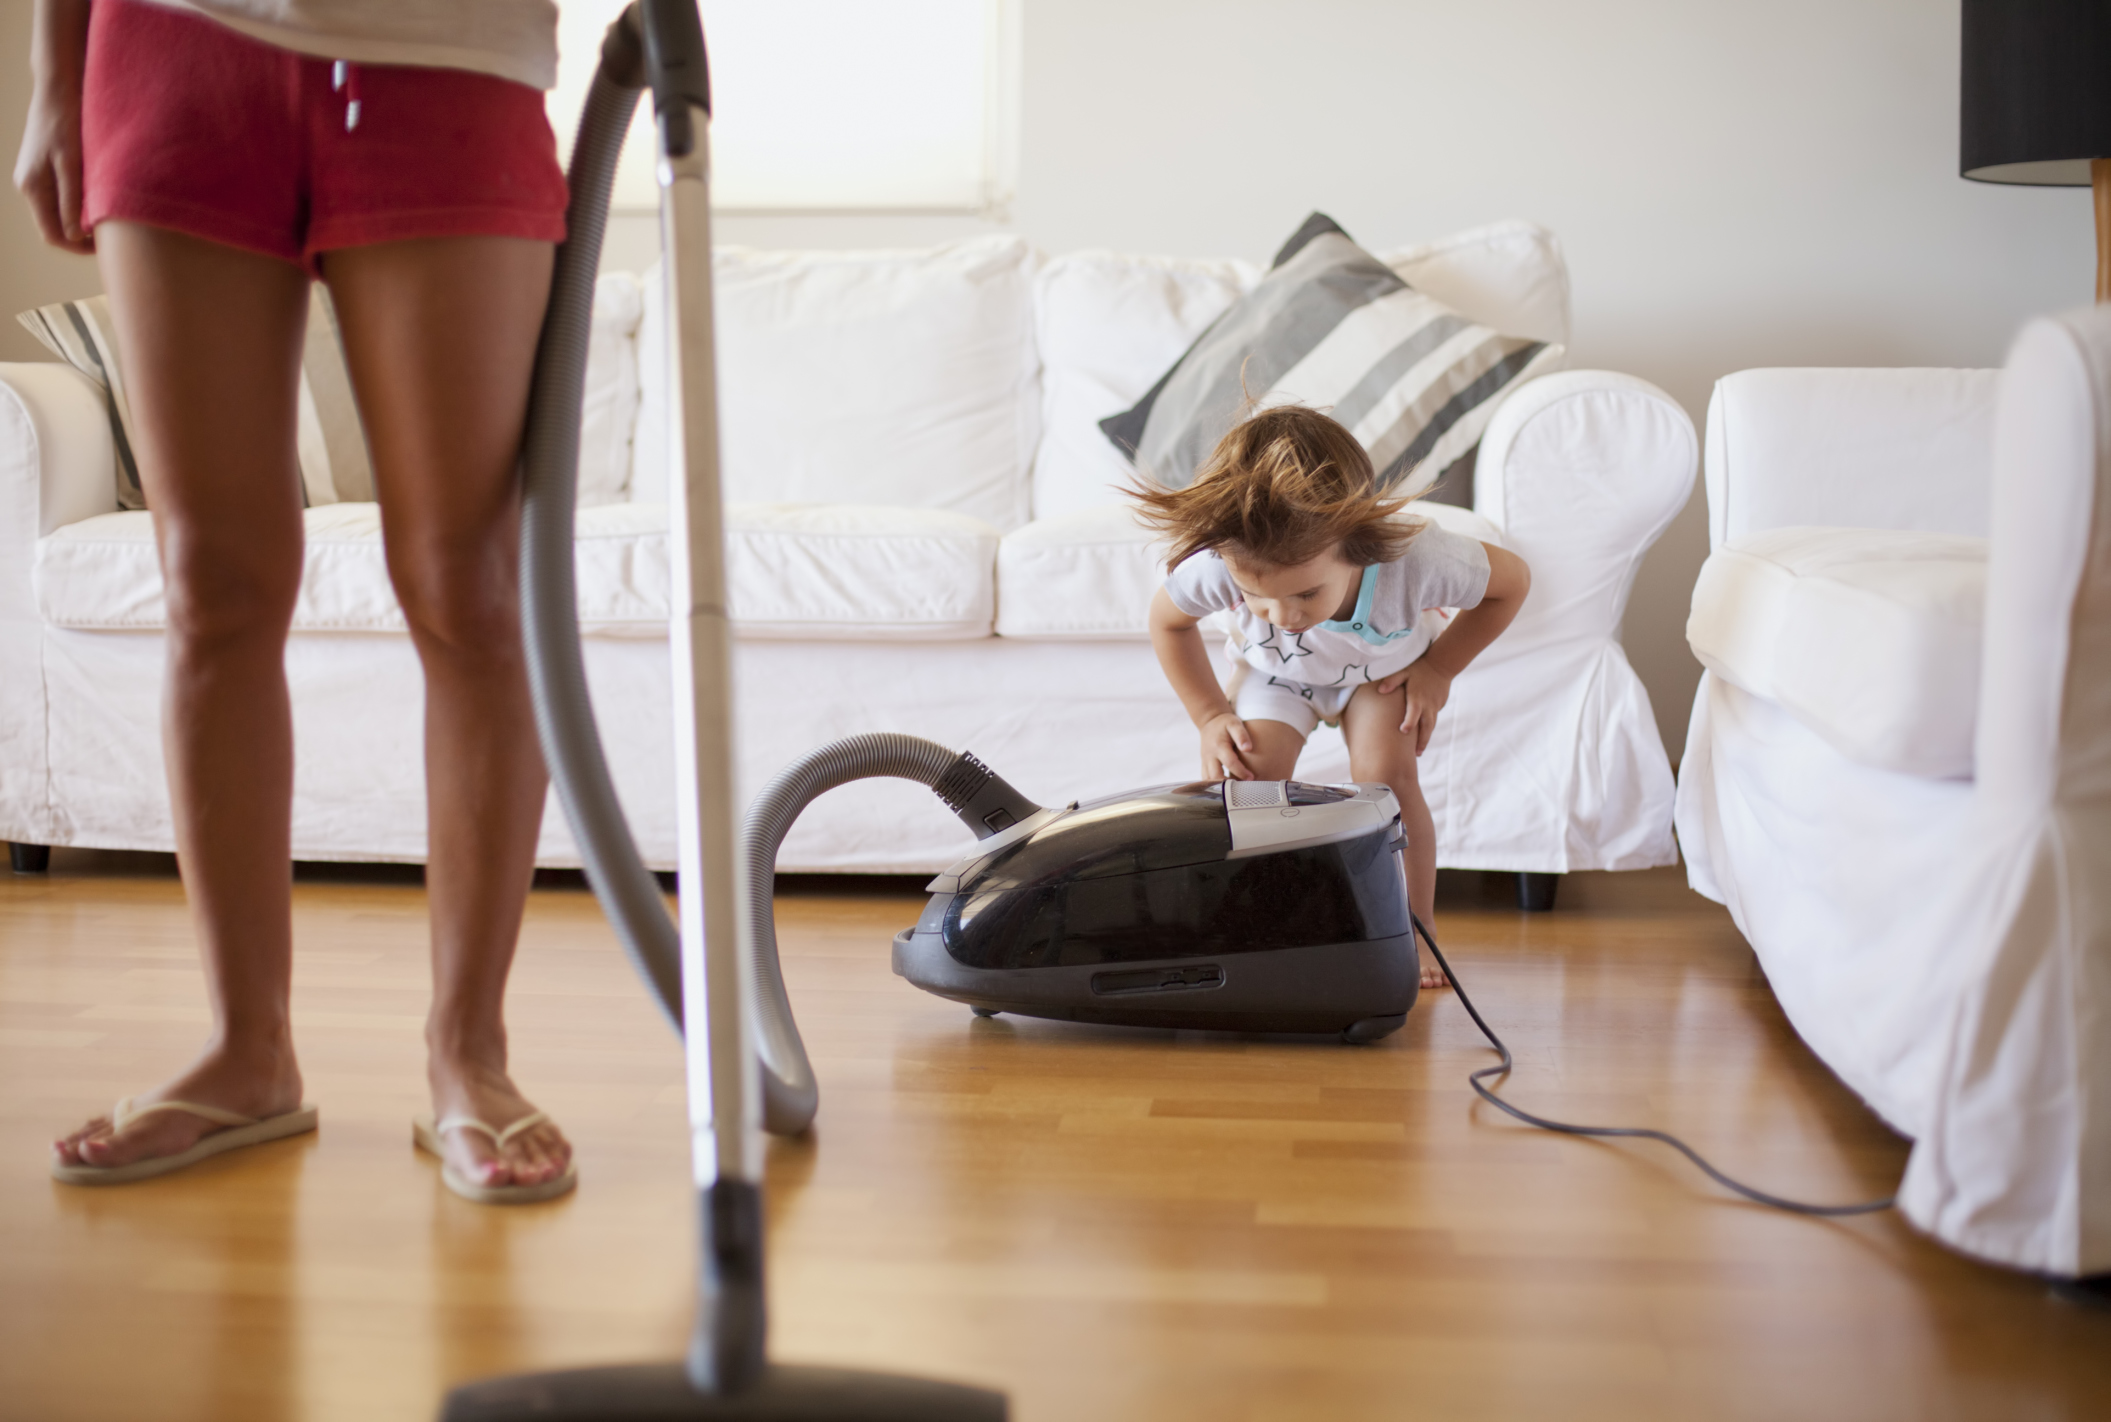 21 things every mum thinks when cleaning the house